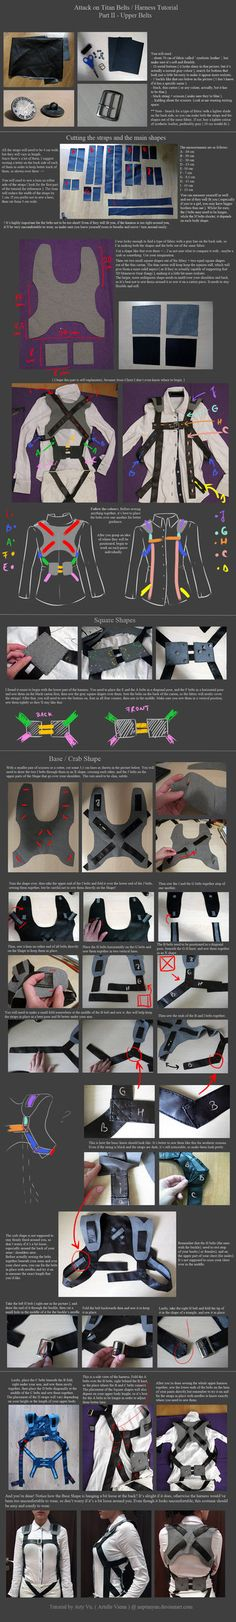 Attack on Titan Belts / Harness tutorial - Part 2 by neptunyan on deviantART